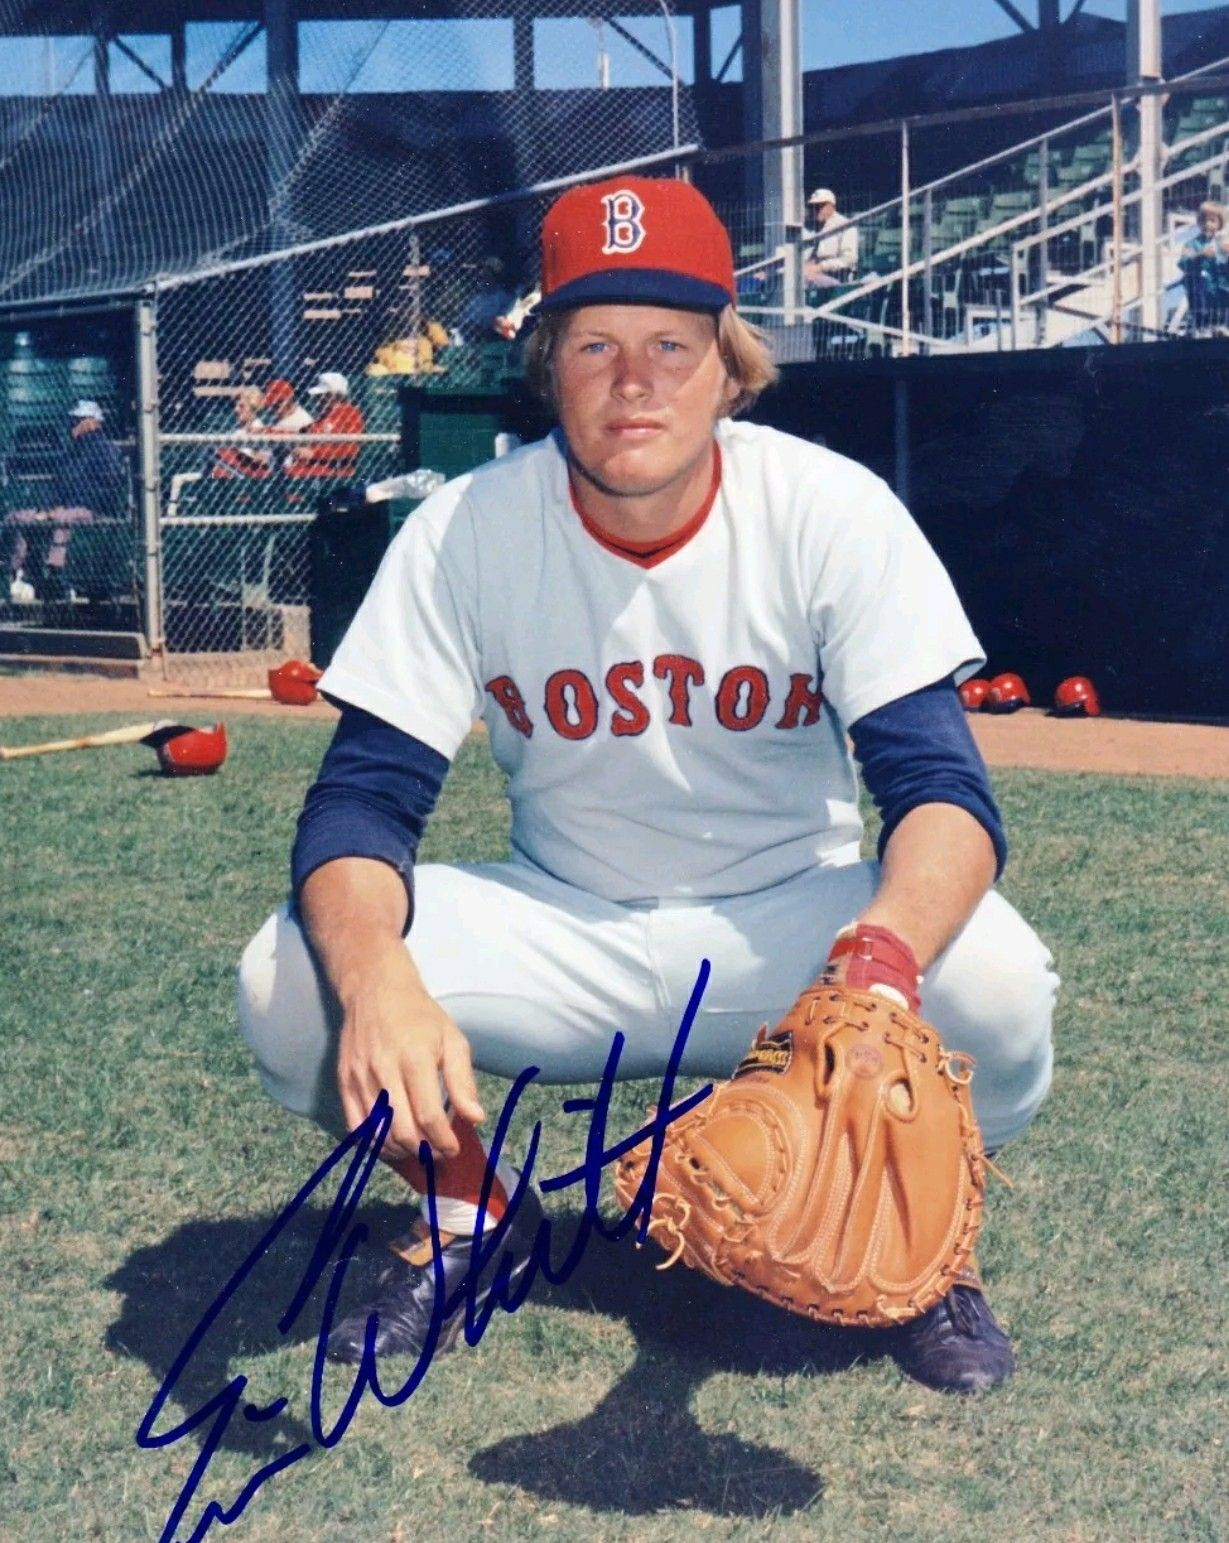 Ernie Whitt With The Red Sox Boston Red Sox Red Sox Red